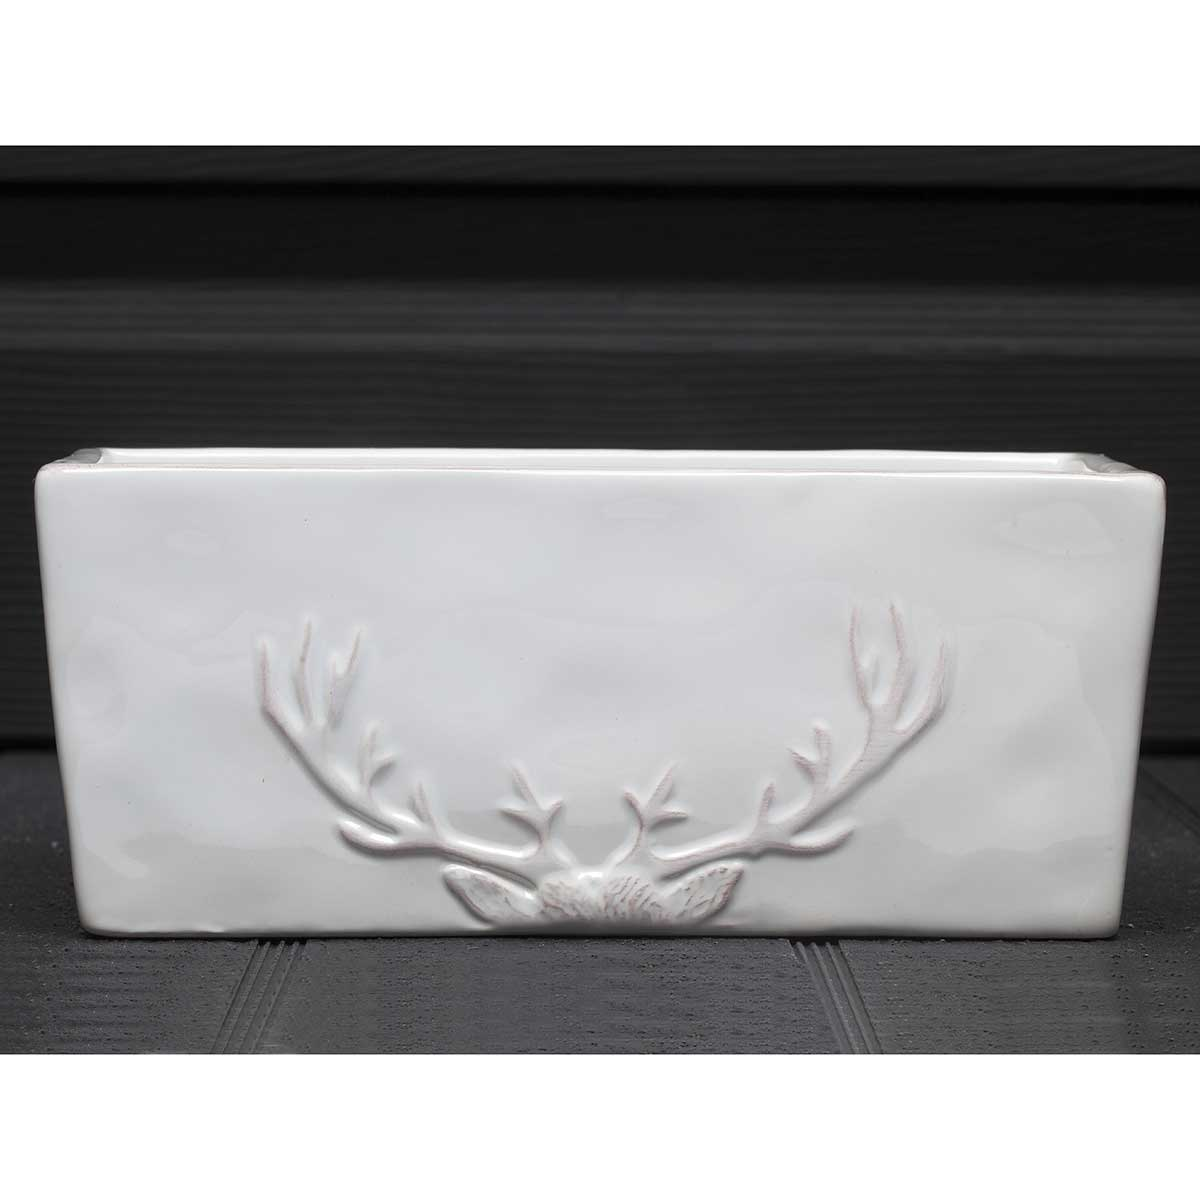 "WHITE STAG RECTANGULAR BOWL 8.5""X3.5""X4"" v22"